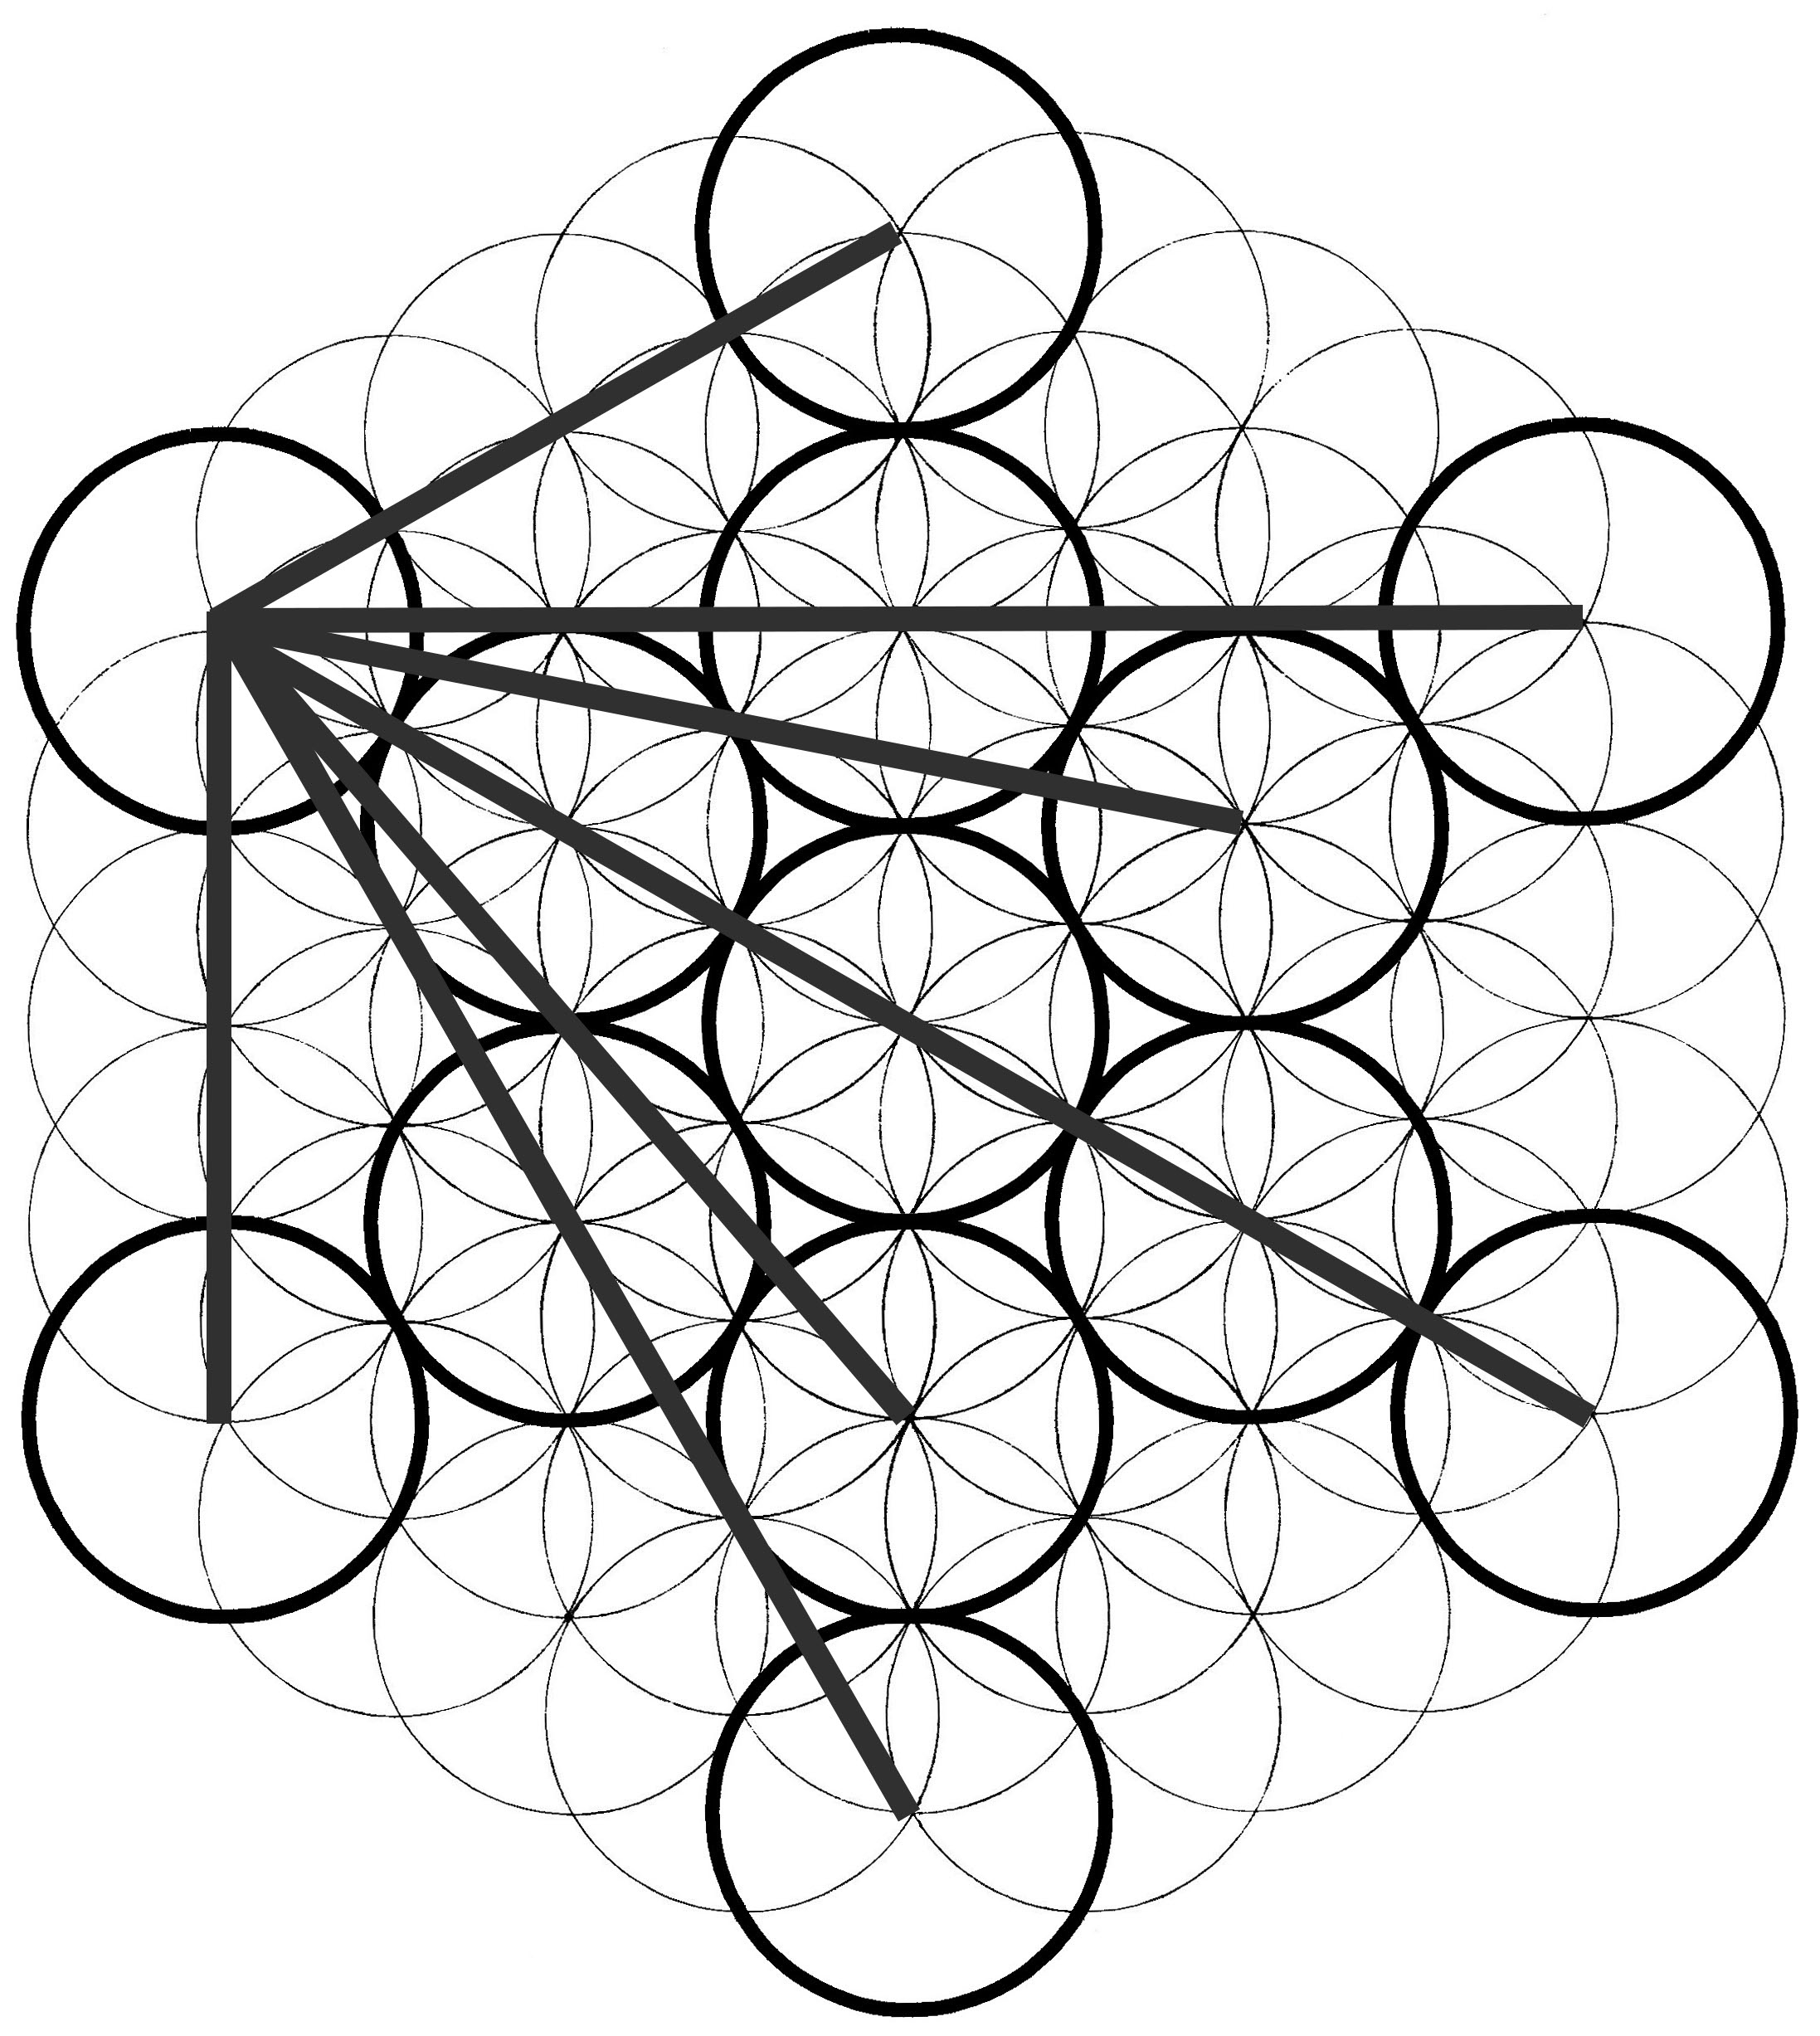 2194x2454 Metatron's Cube How To Draw Cube, Drawing Techniques